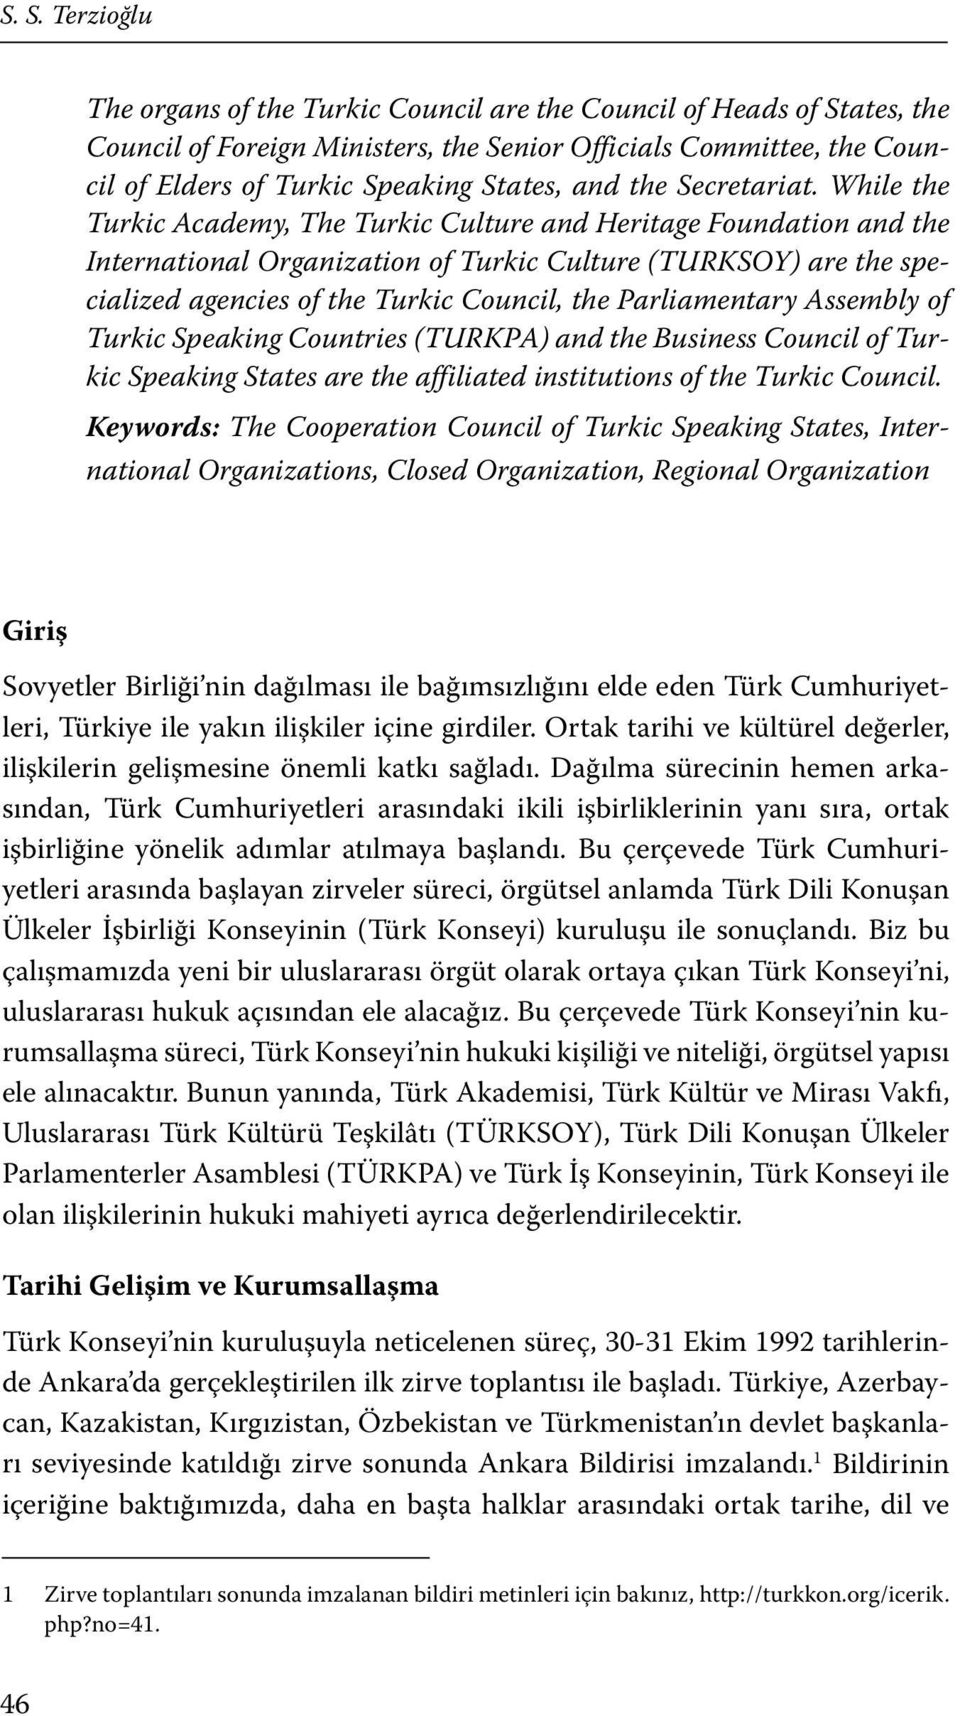 While the Turkic Academy, The Turkic Culture and Heritage Foundation and the International Organization of Turkic Culture (TURKSOY) are the specialized agencies of the Turkic Council, the